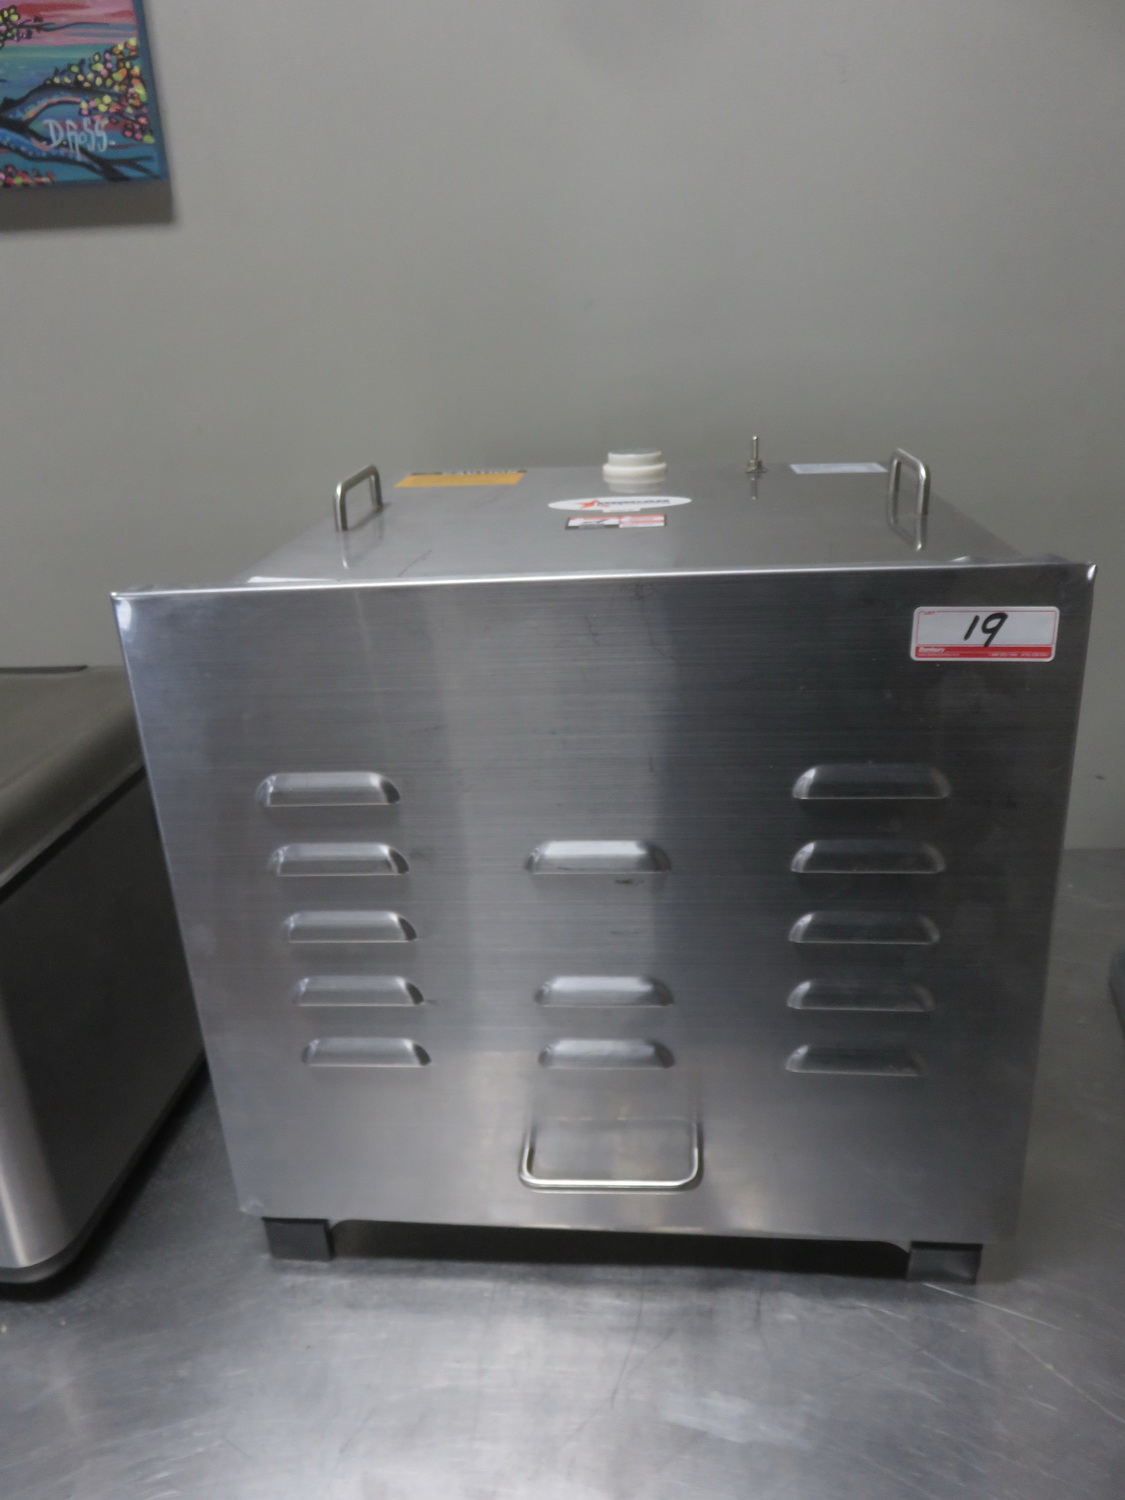 OMCAN 10924 STAINLESS FOOD DEHYDRTOR (110V) W/ 4-SHELVES